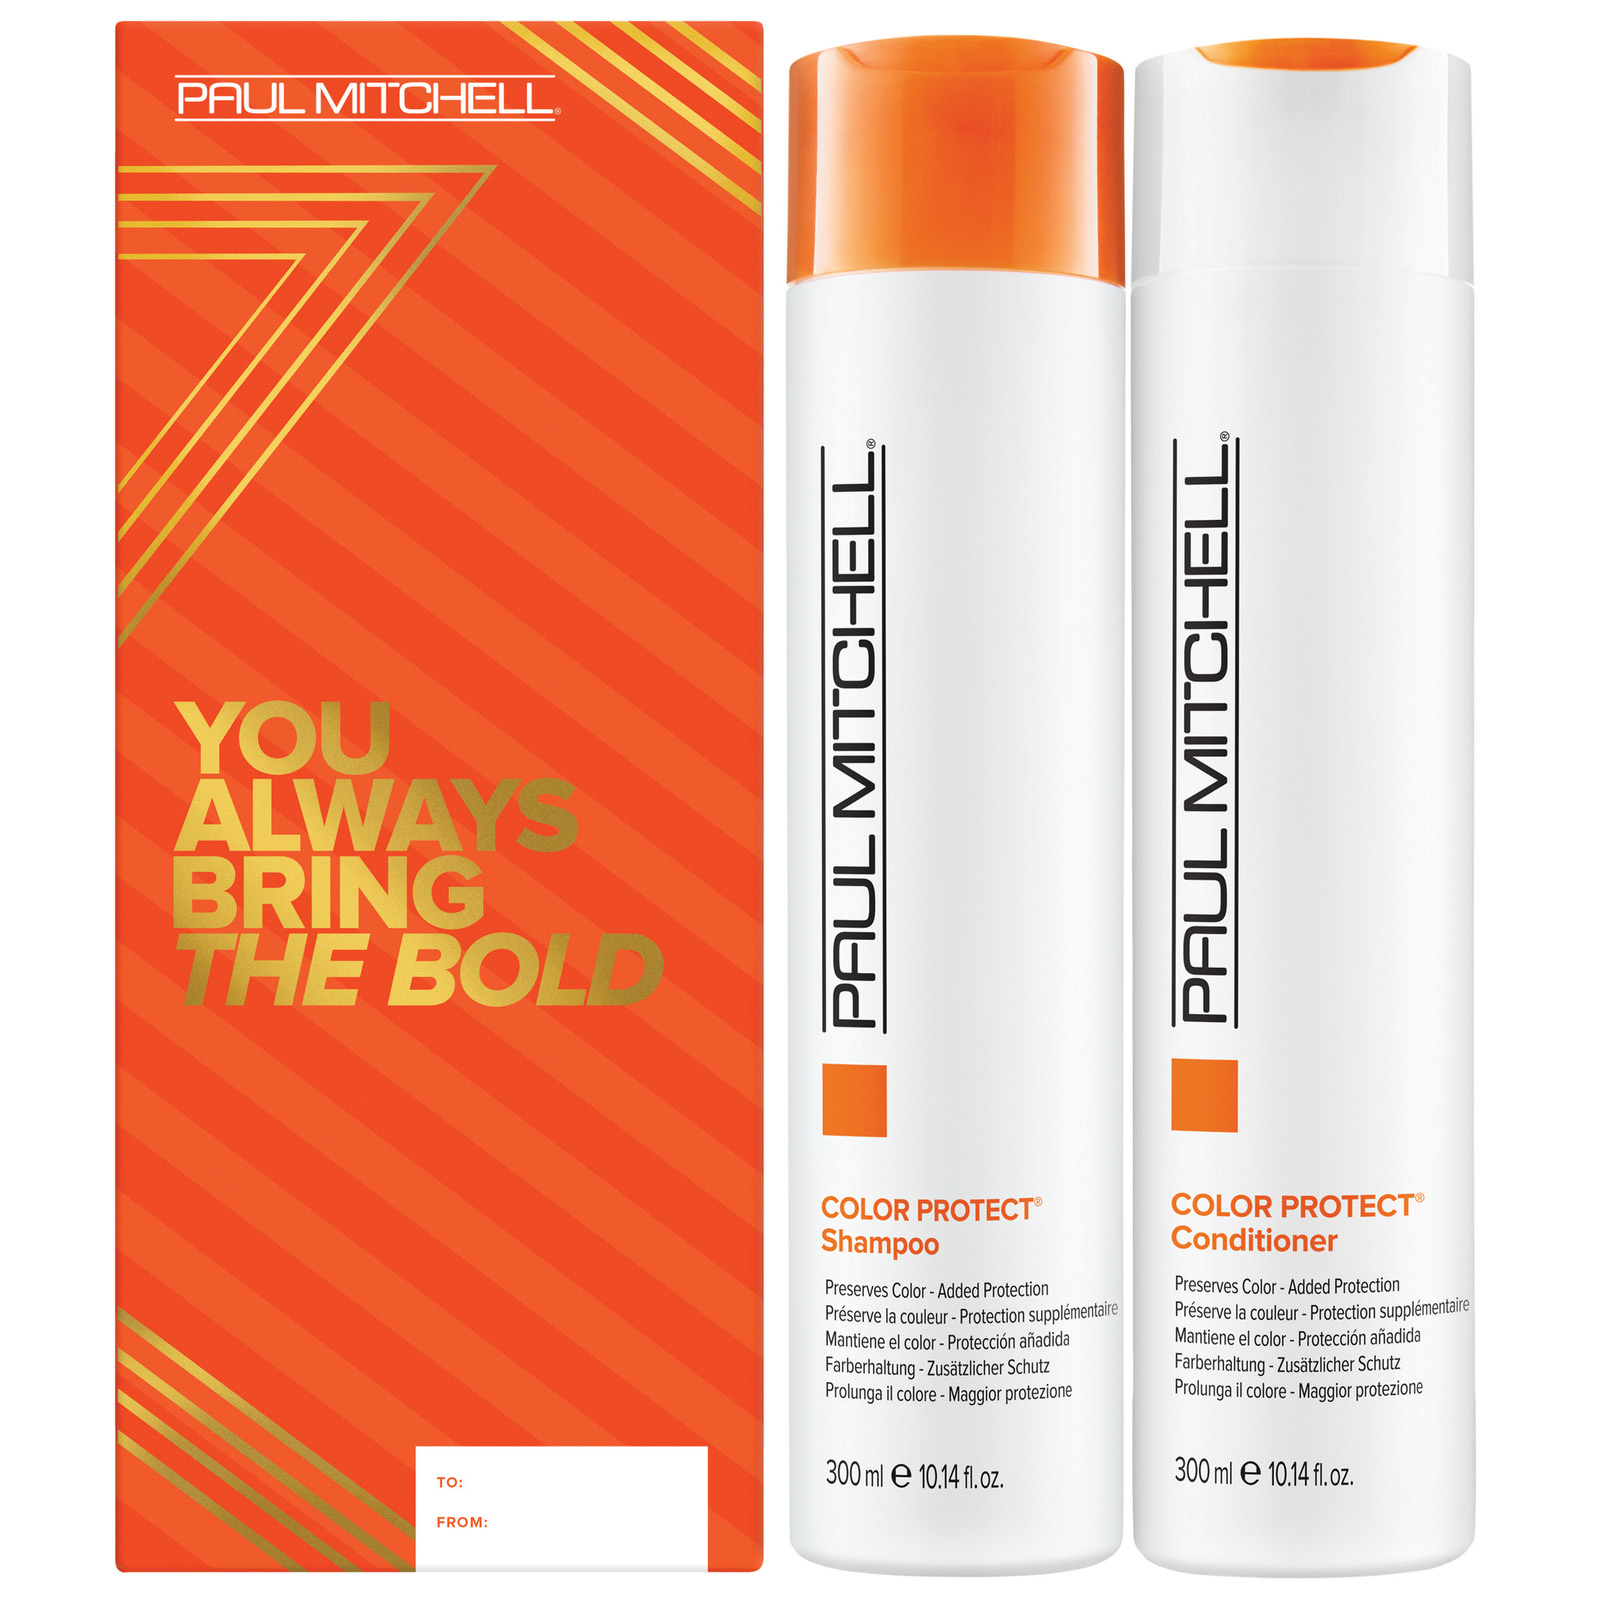 Paul Mitchell Christmas 2020 Color Protect Duo: You Always Bring The Bold